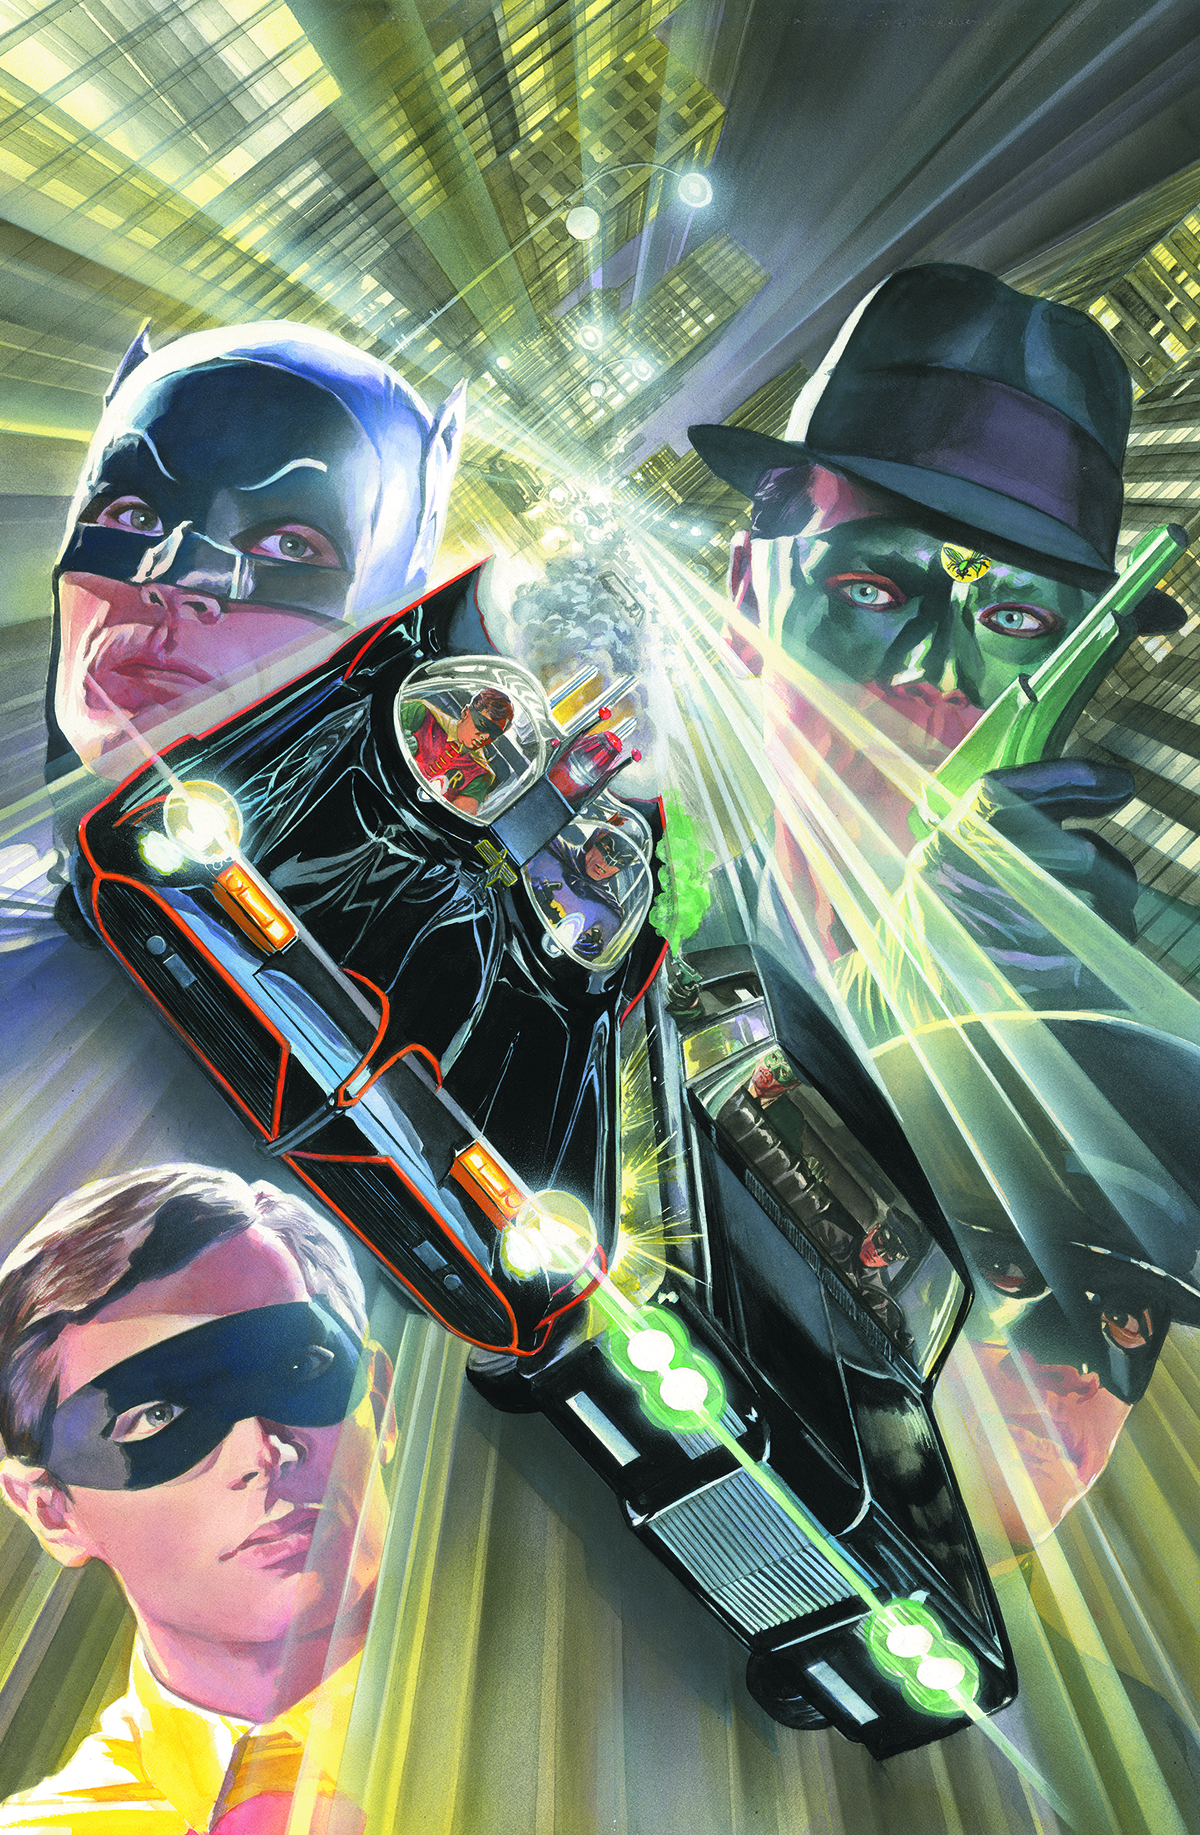 BATMAN 66 MEETS GREEN HORNET #5